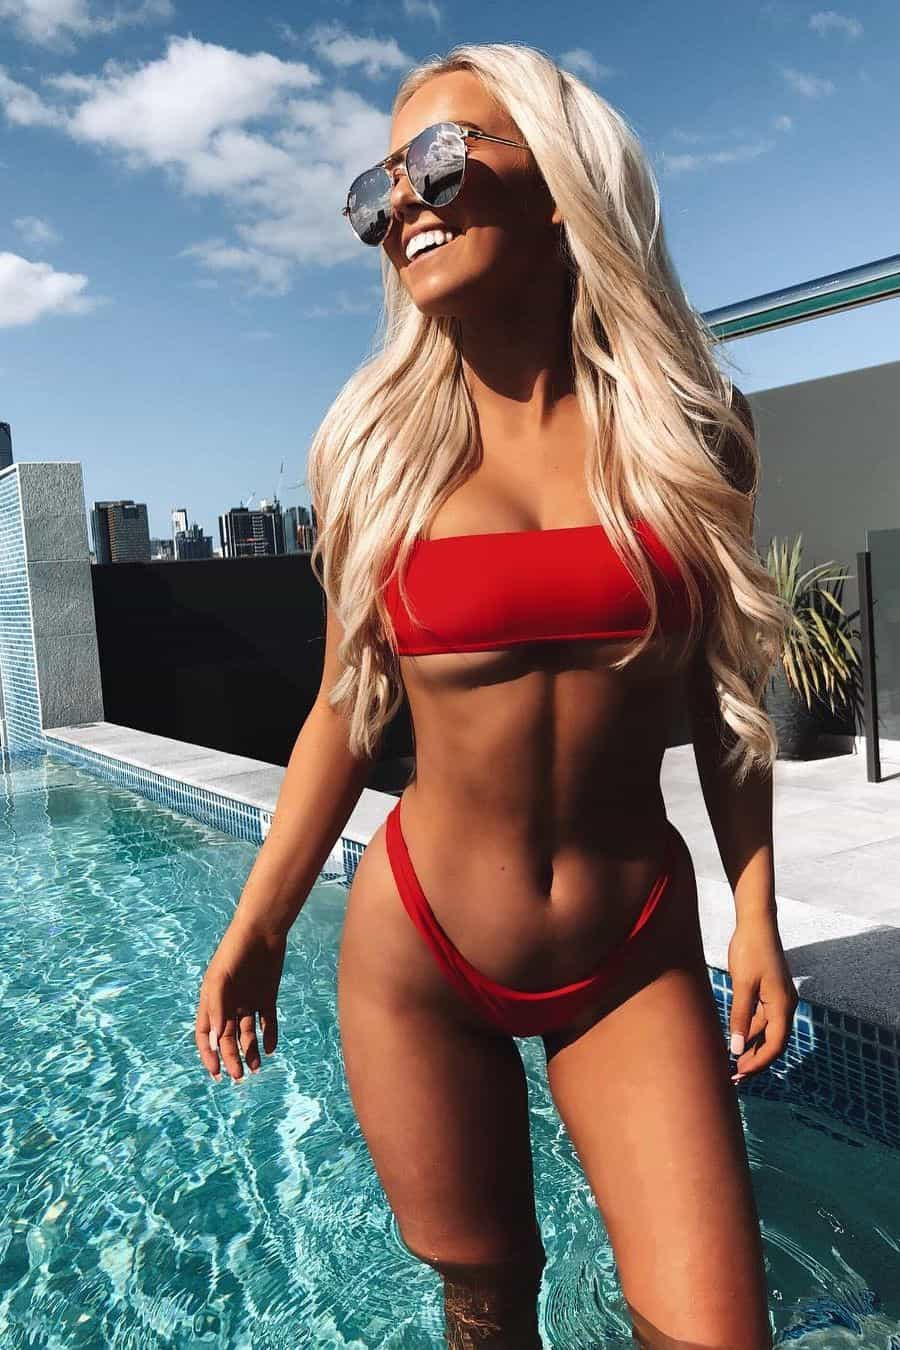 Madison Woolley: O pecado em forma humana